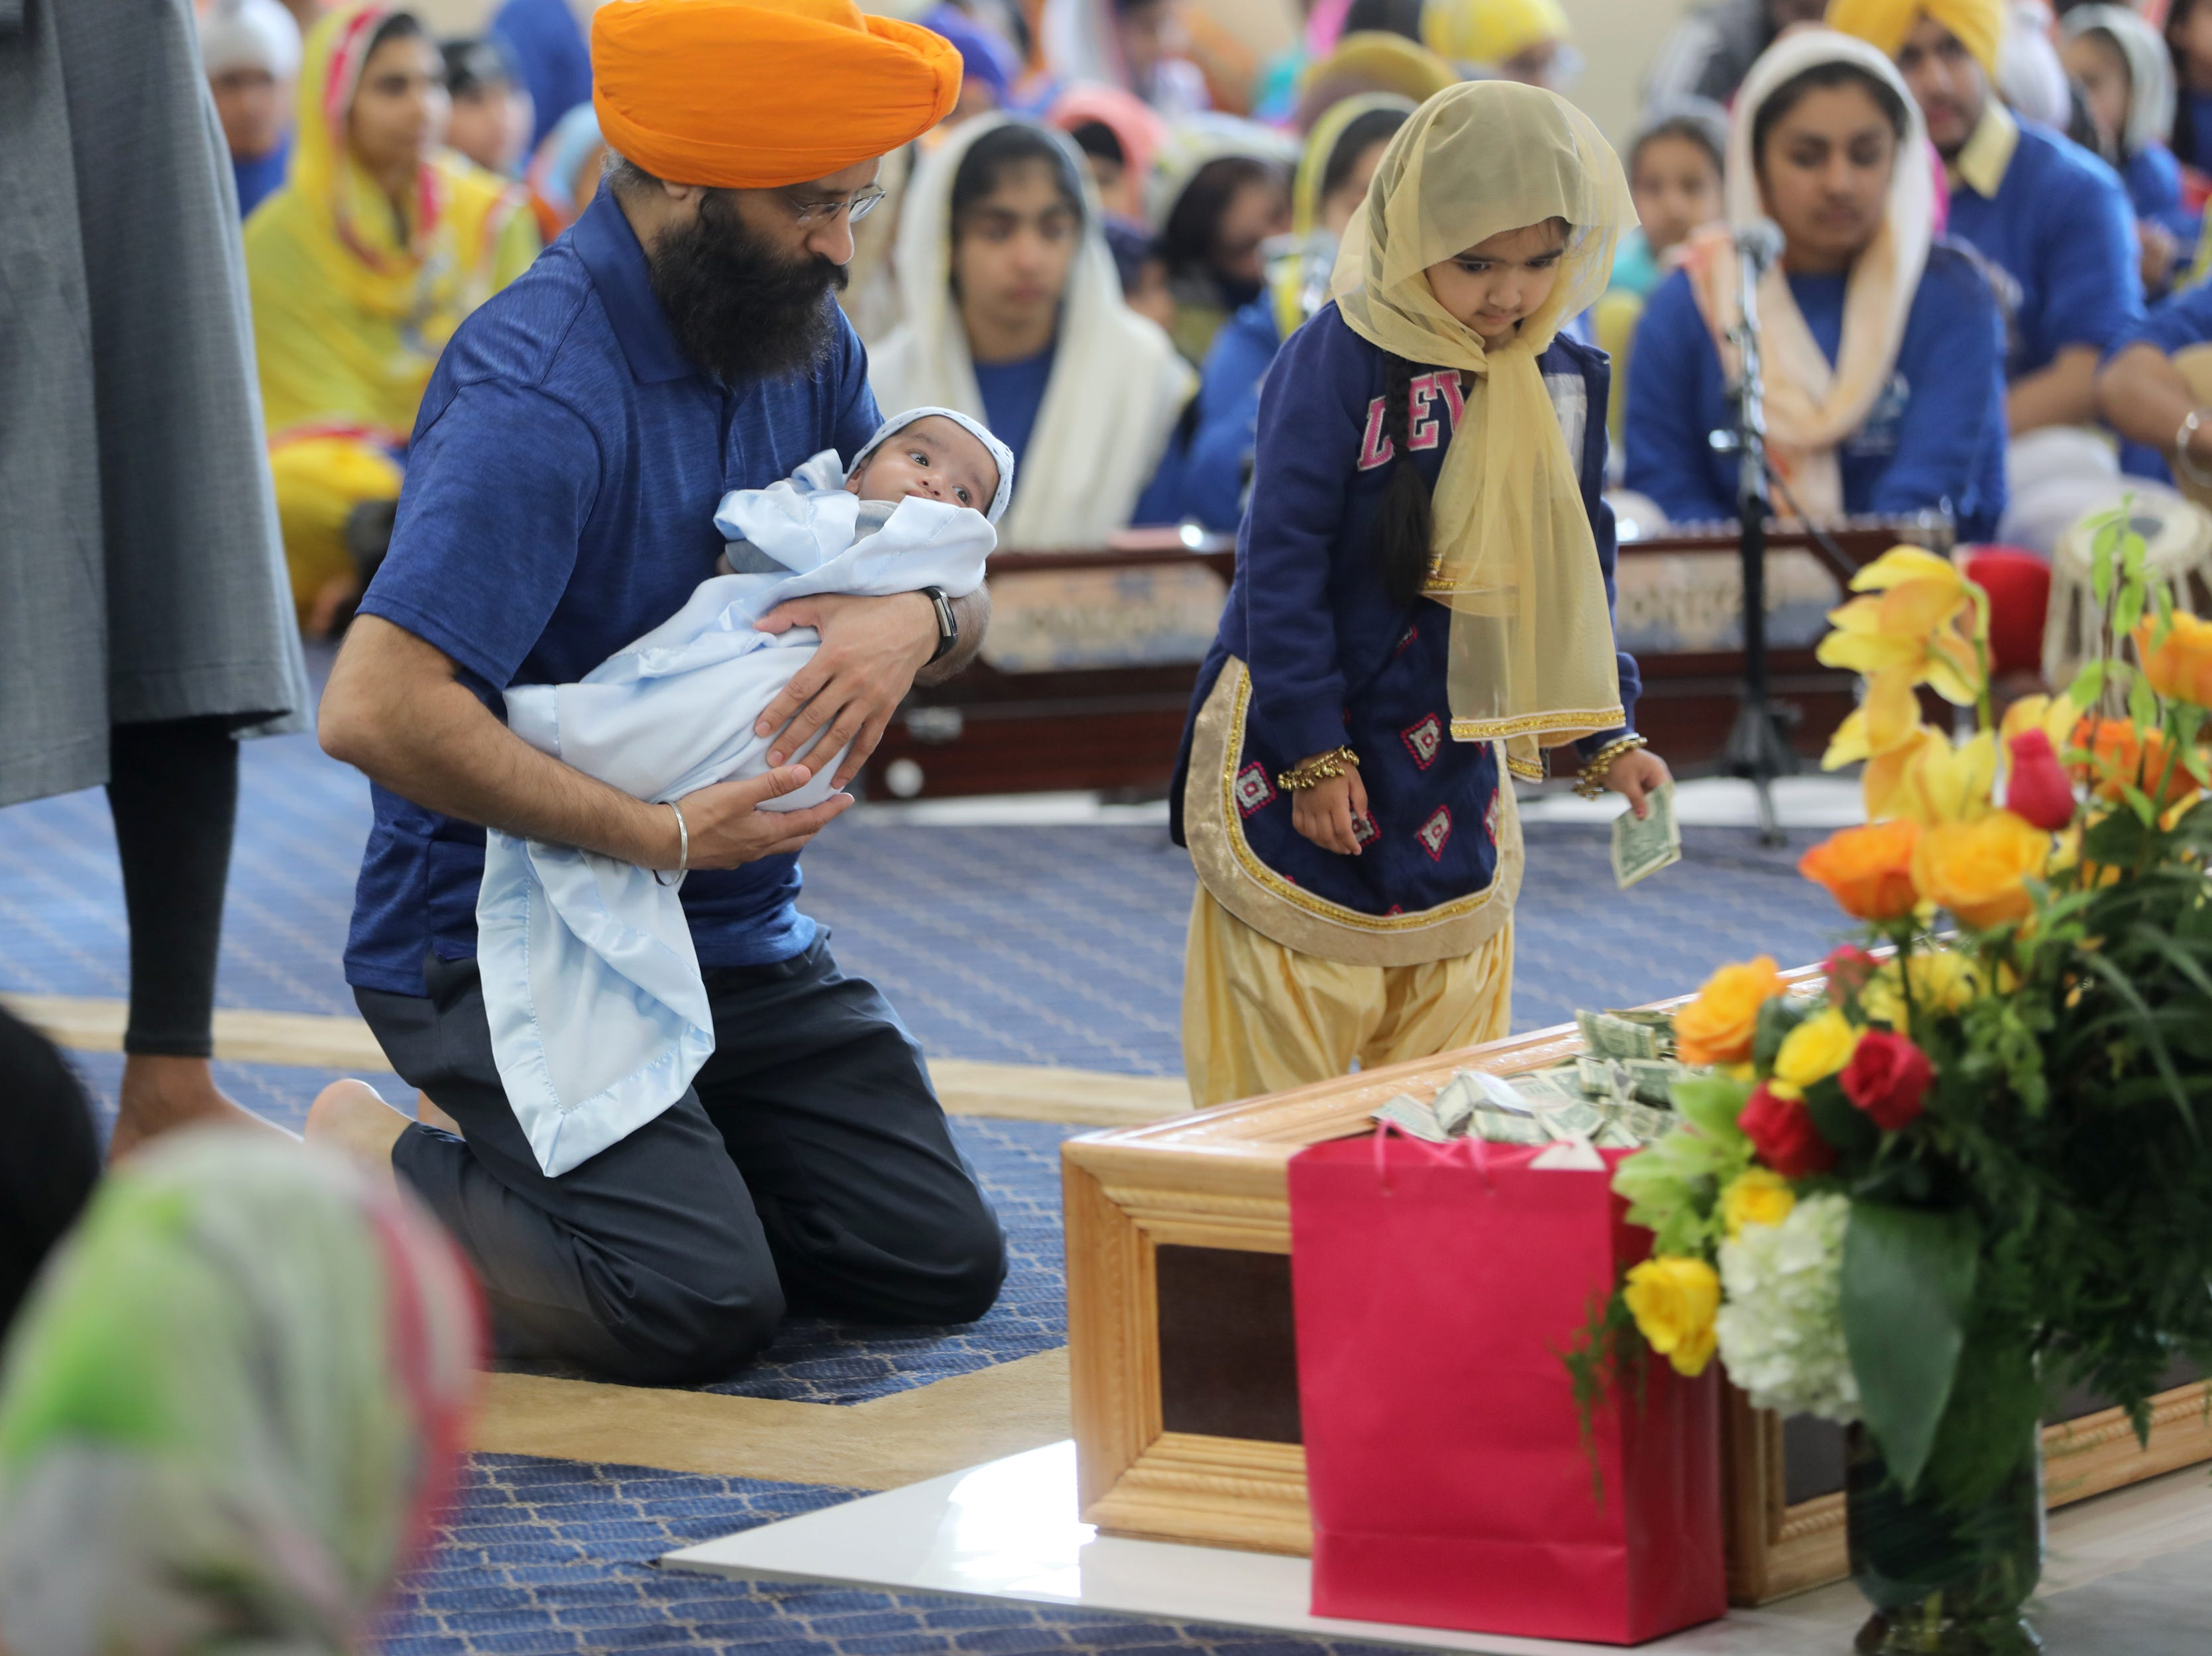 People kneel to pray and give a monetary donation at the  Guru Nanak Mission. Sunday, April, 14, 2019